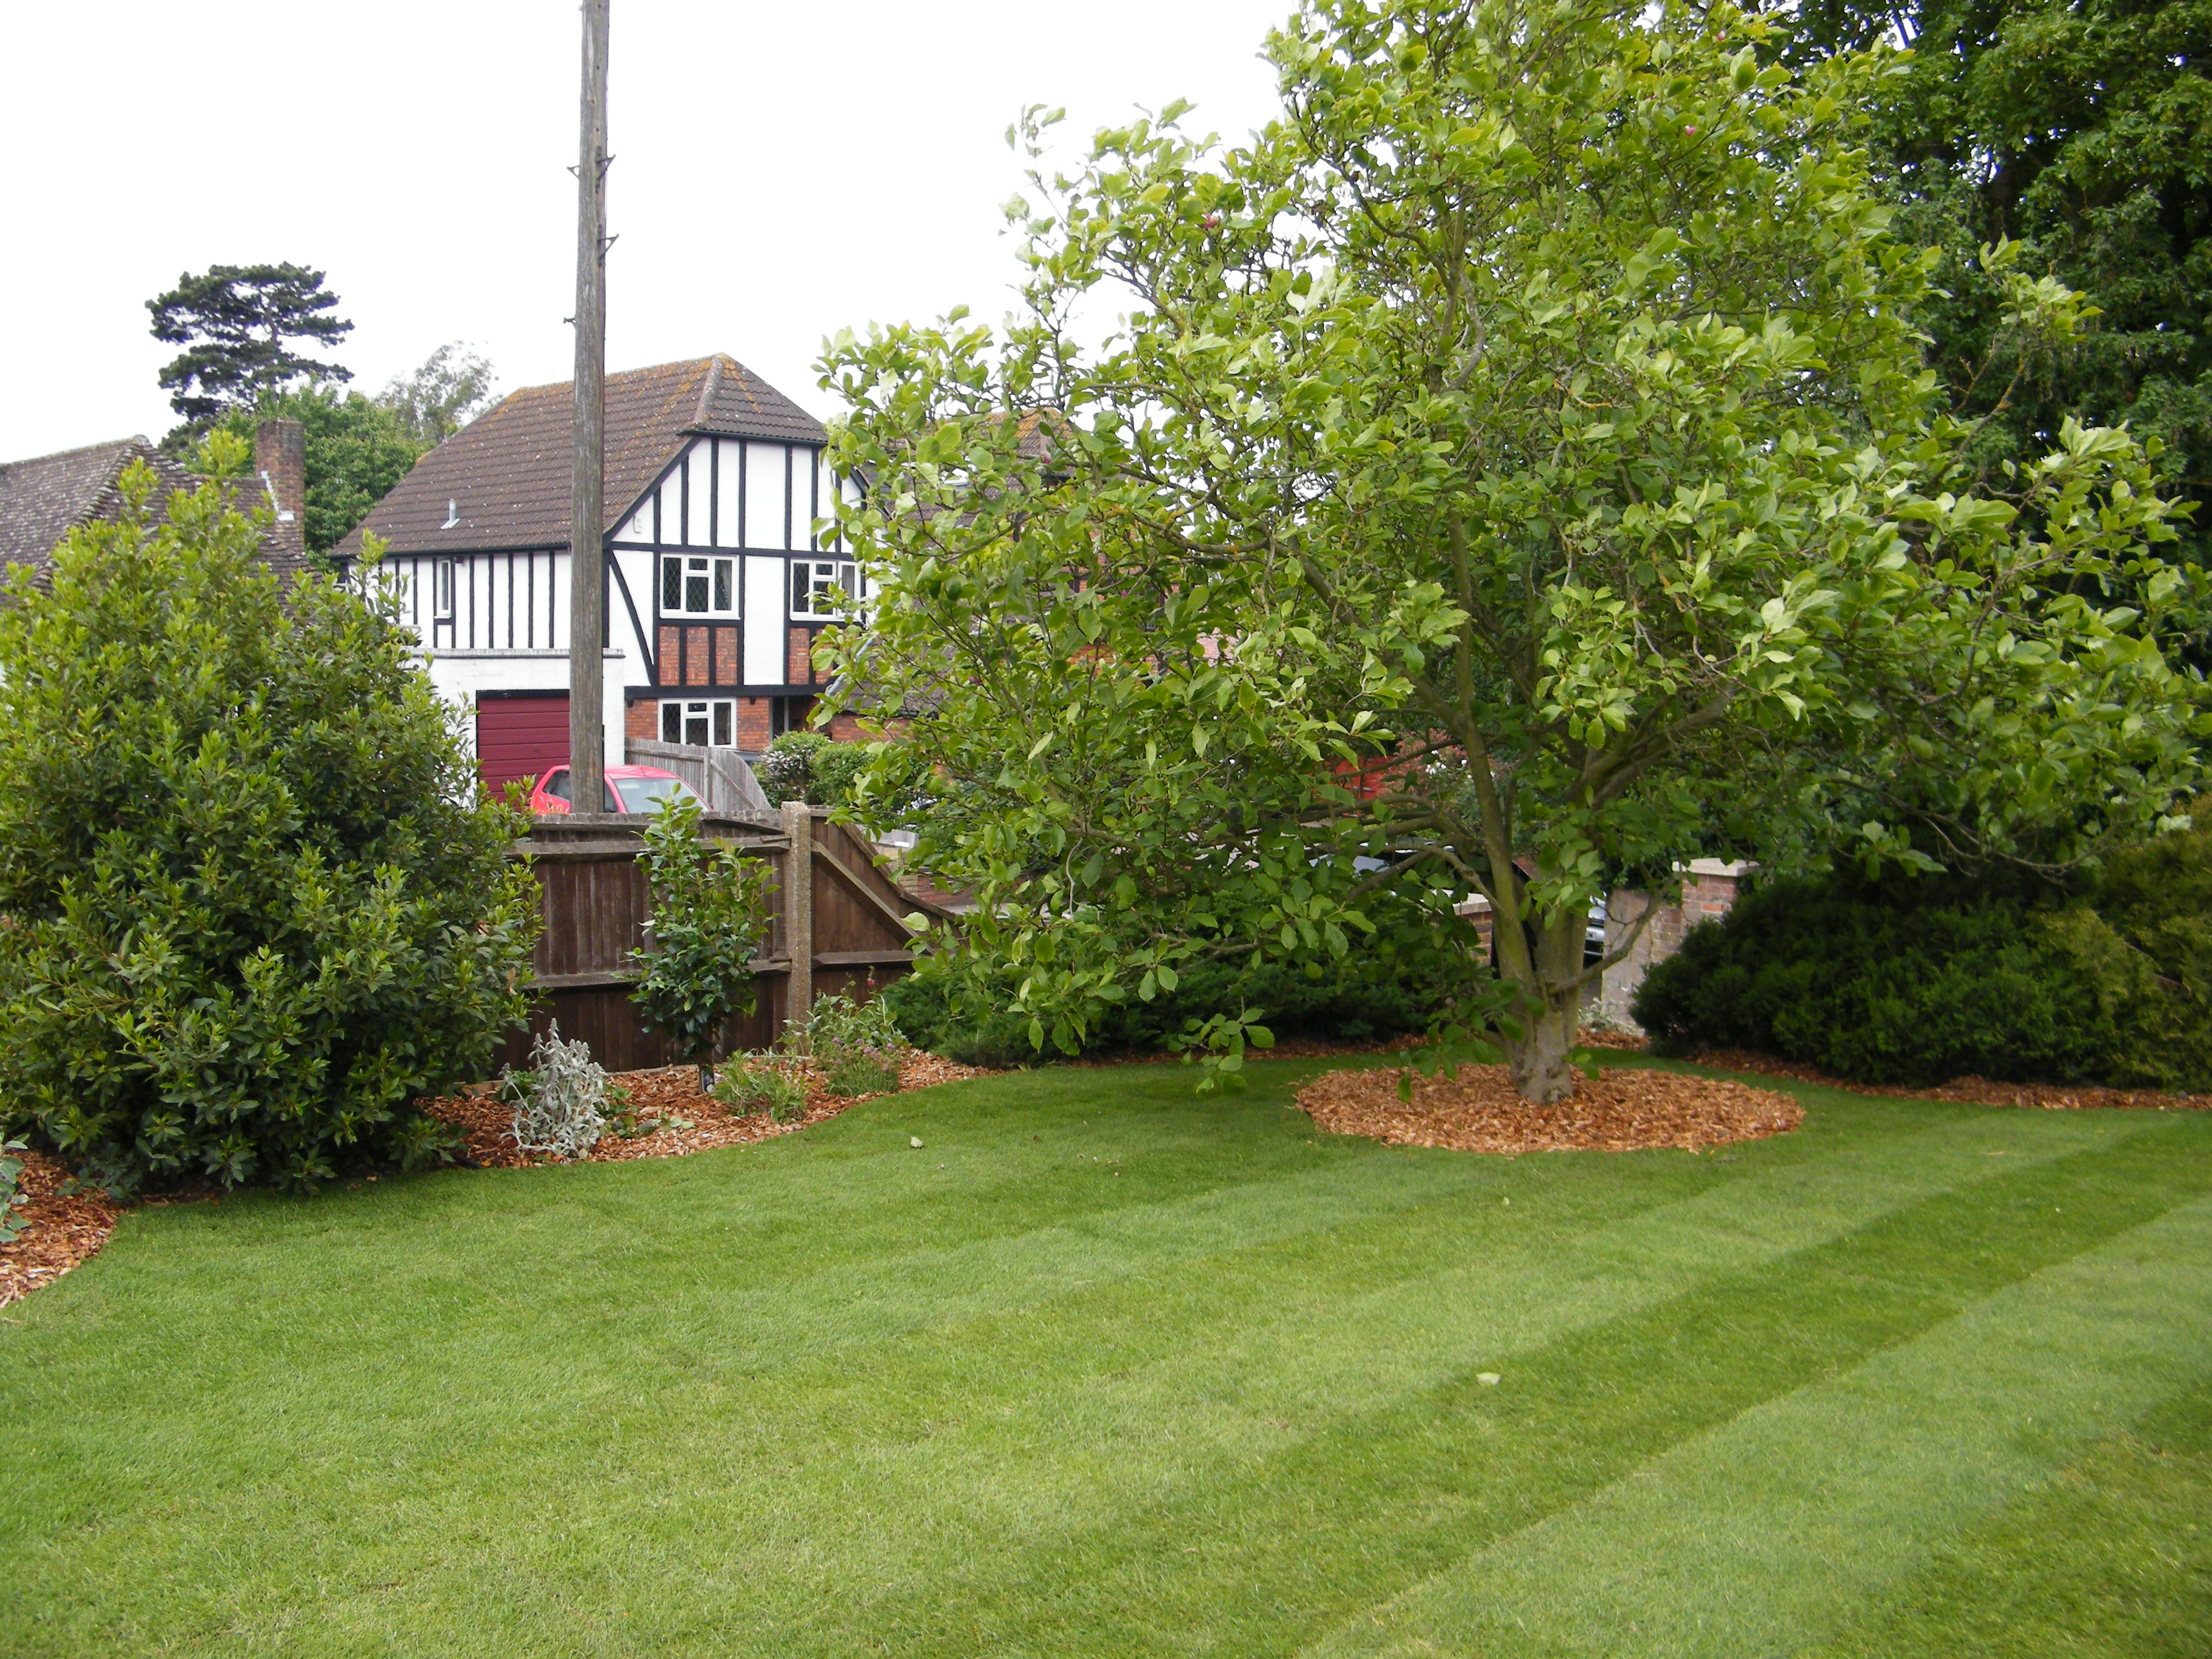 The view beyond floral hardy london uk for Garden design kent